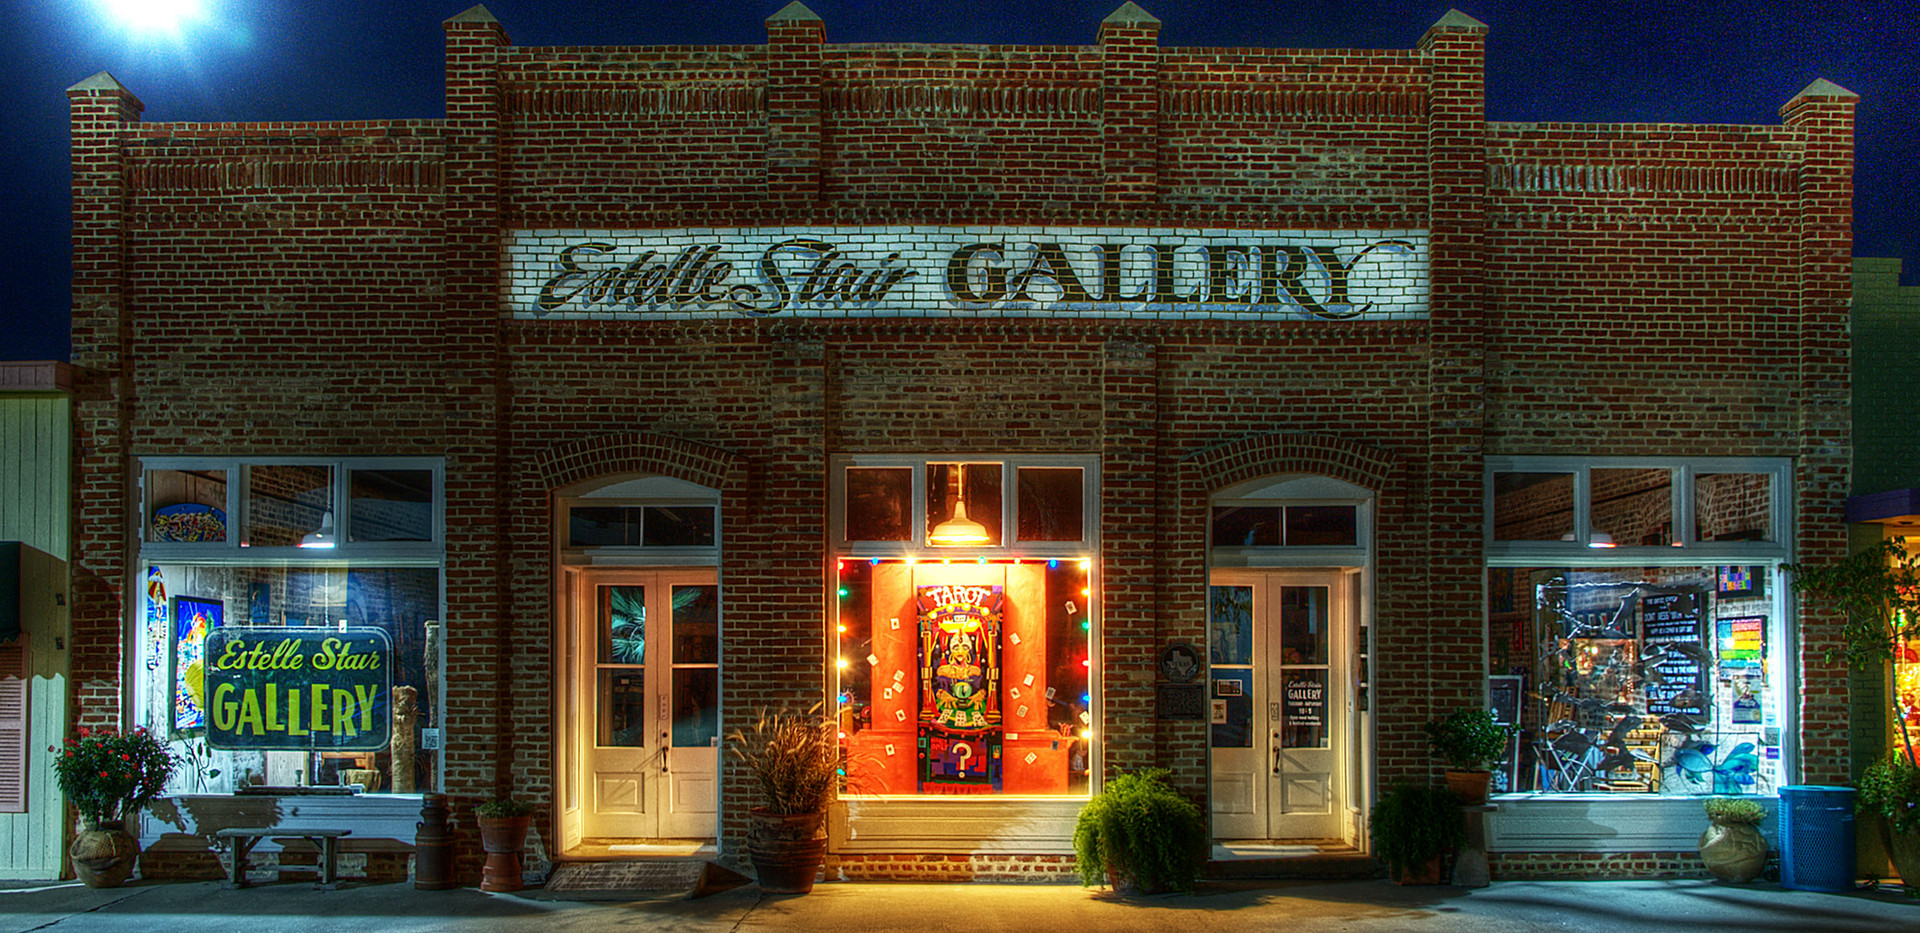 Estelle Stair Gallery, Rockport, Texas